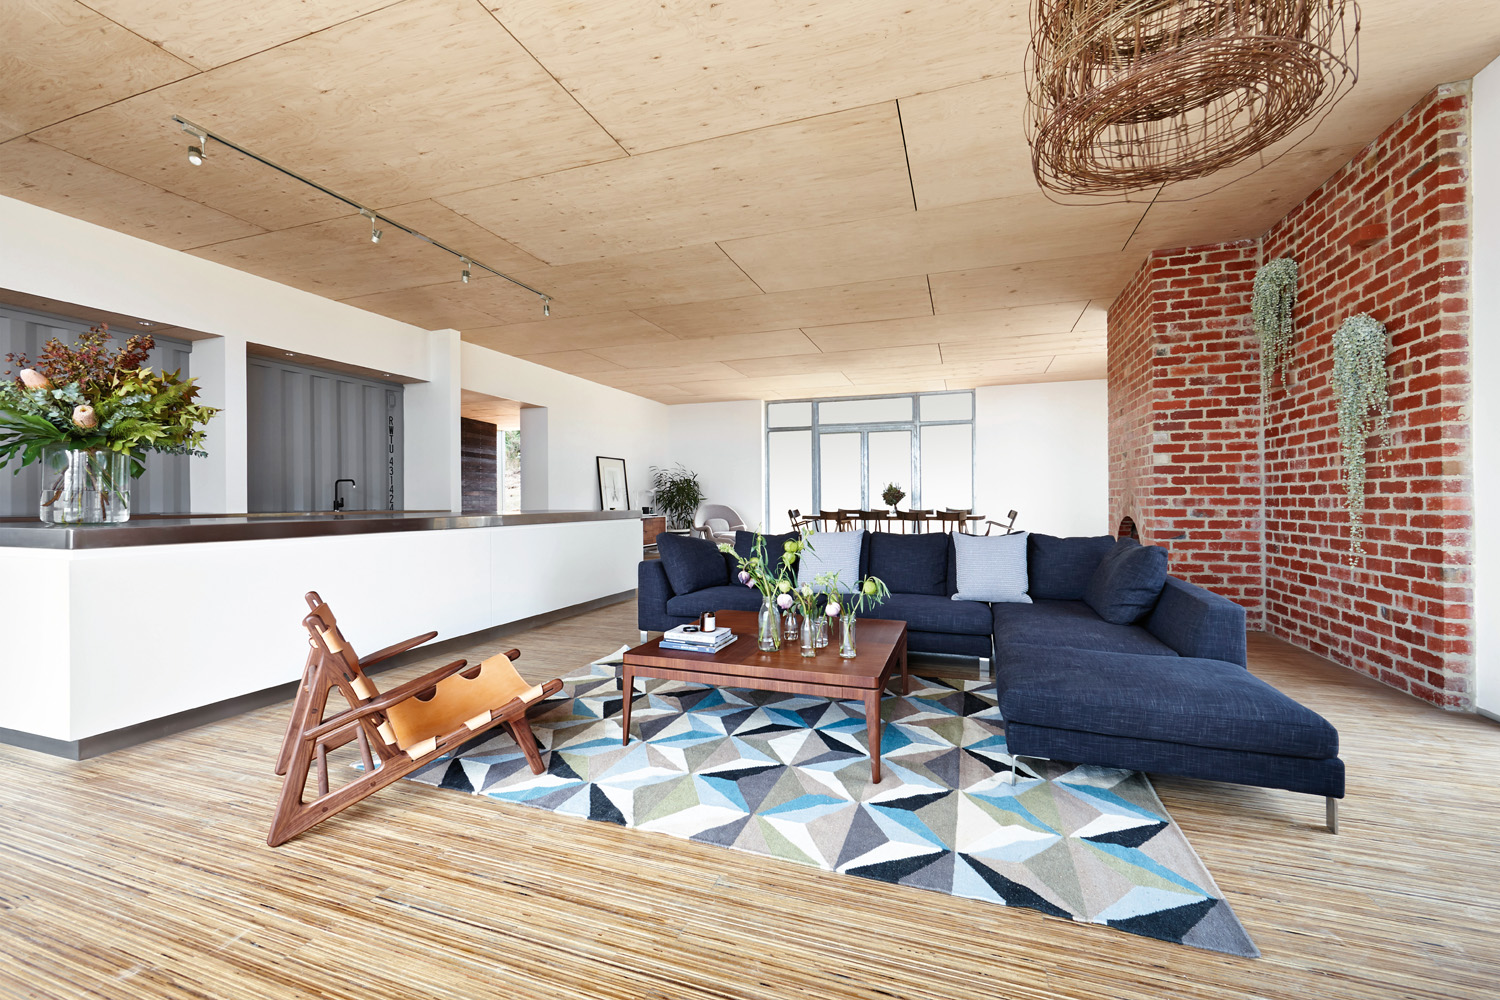 A brick wall provides contrast against the timber interior